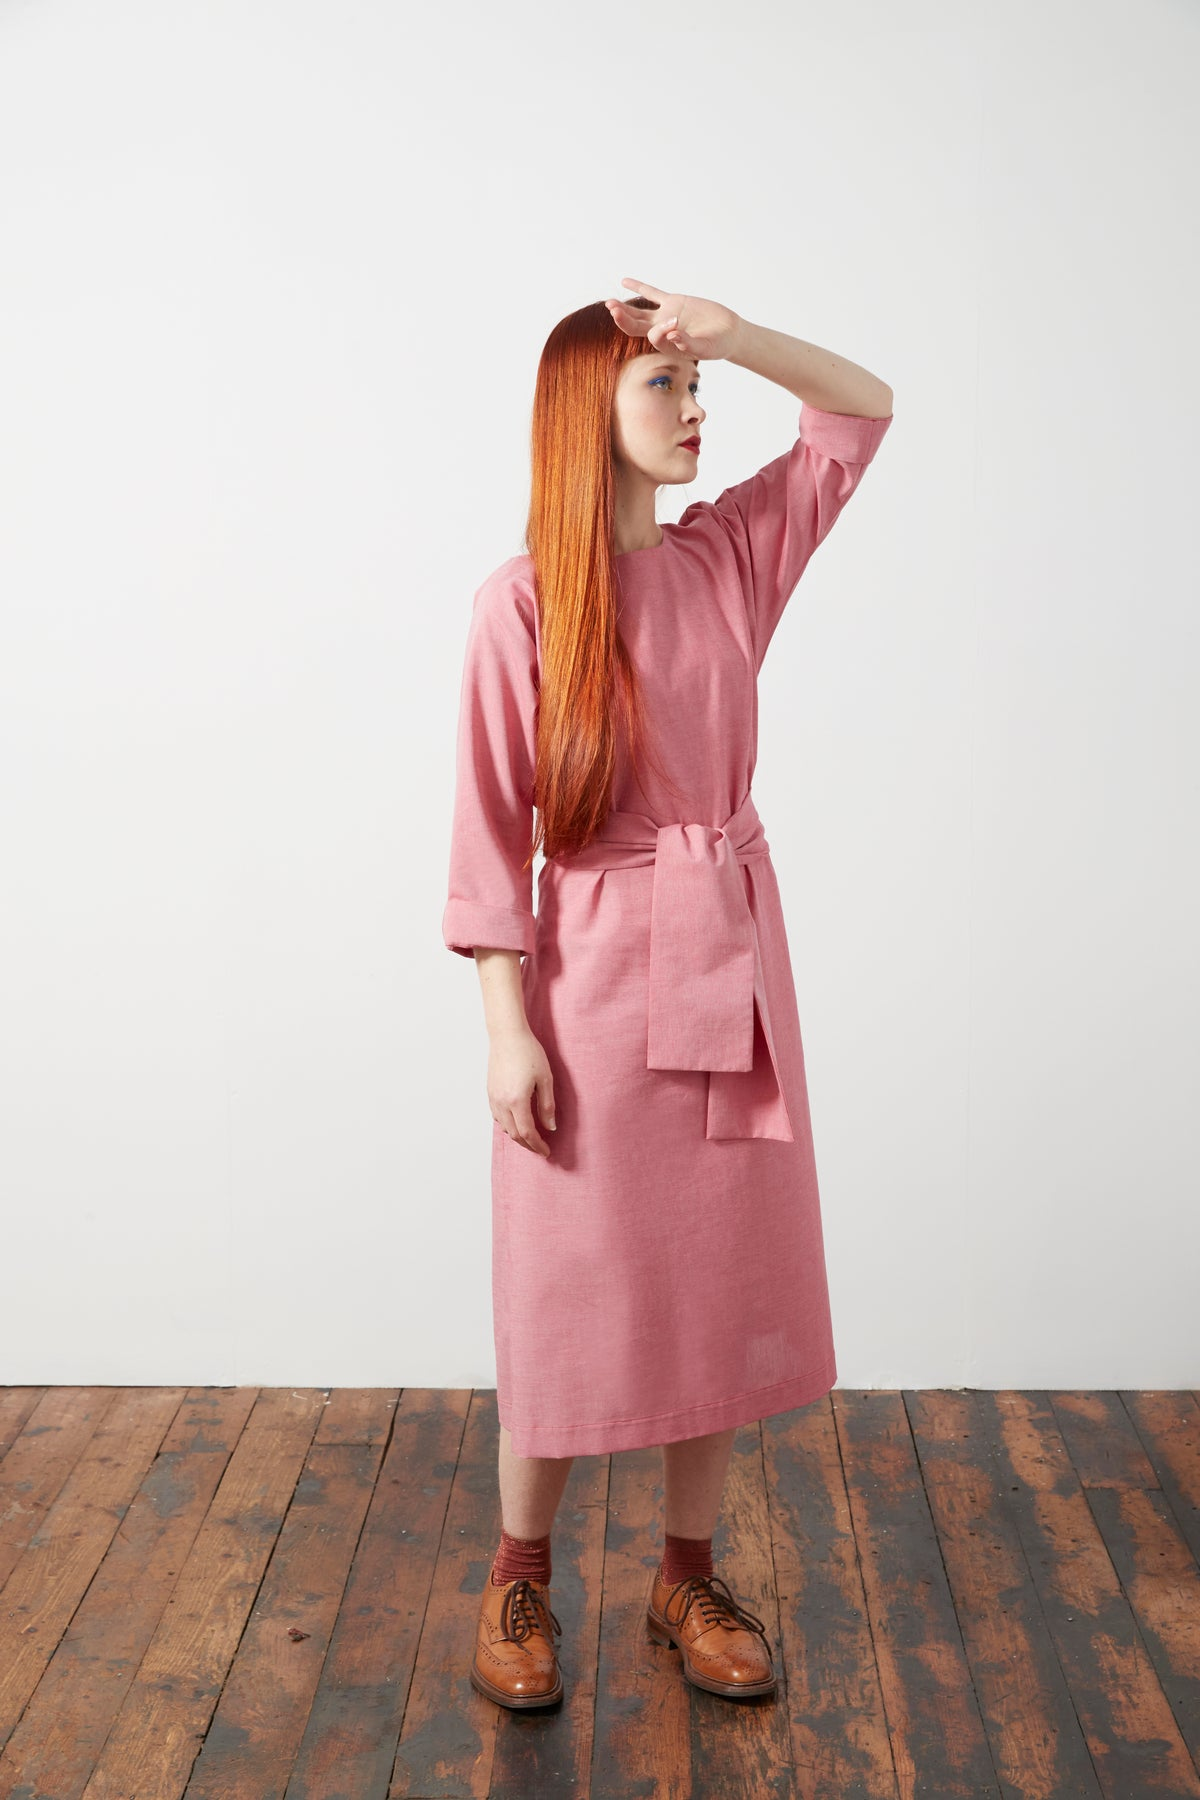 Image of Obi Sash Tie Dress